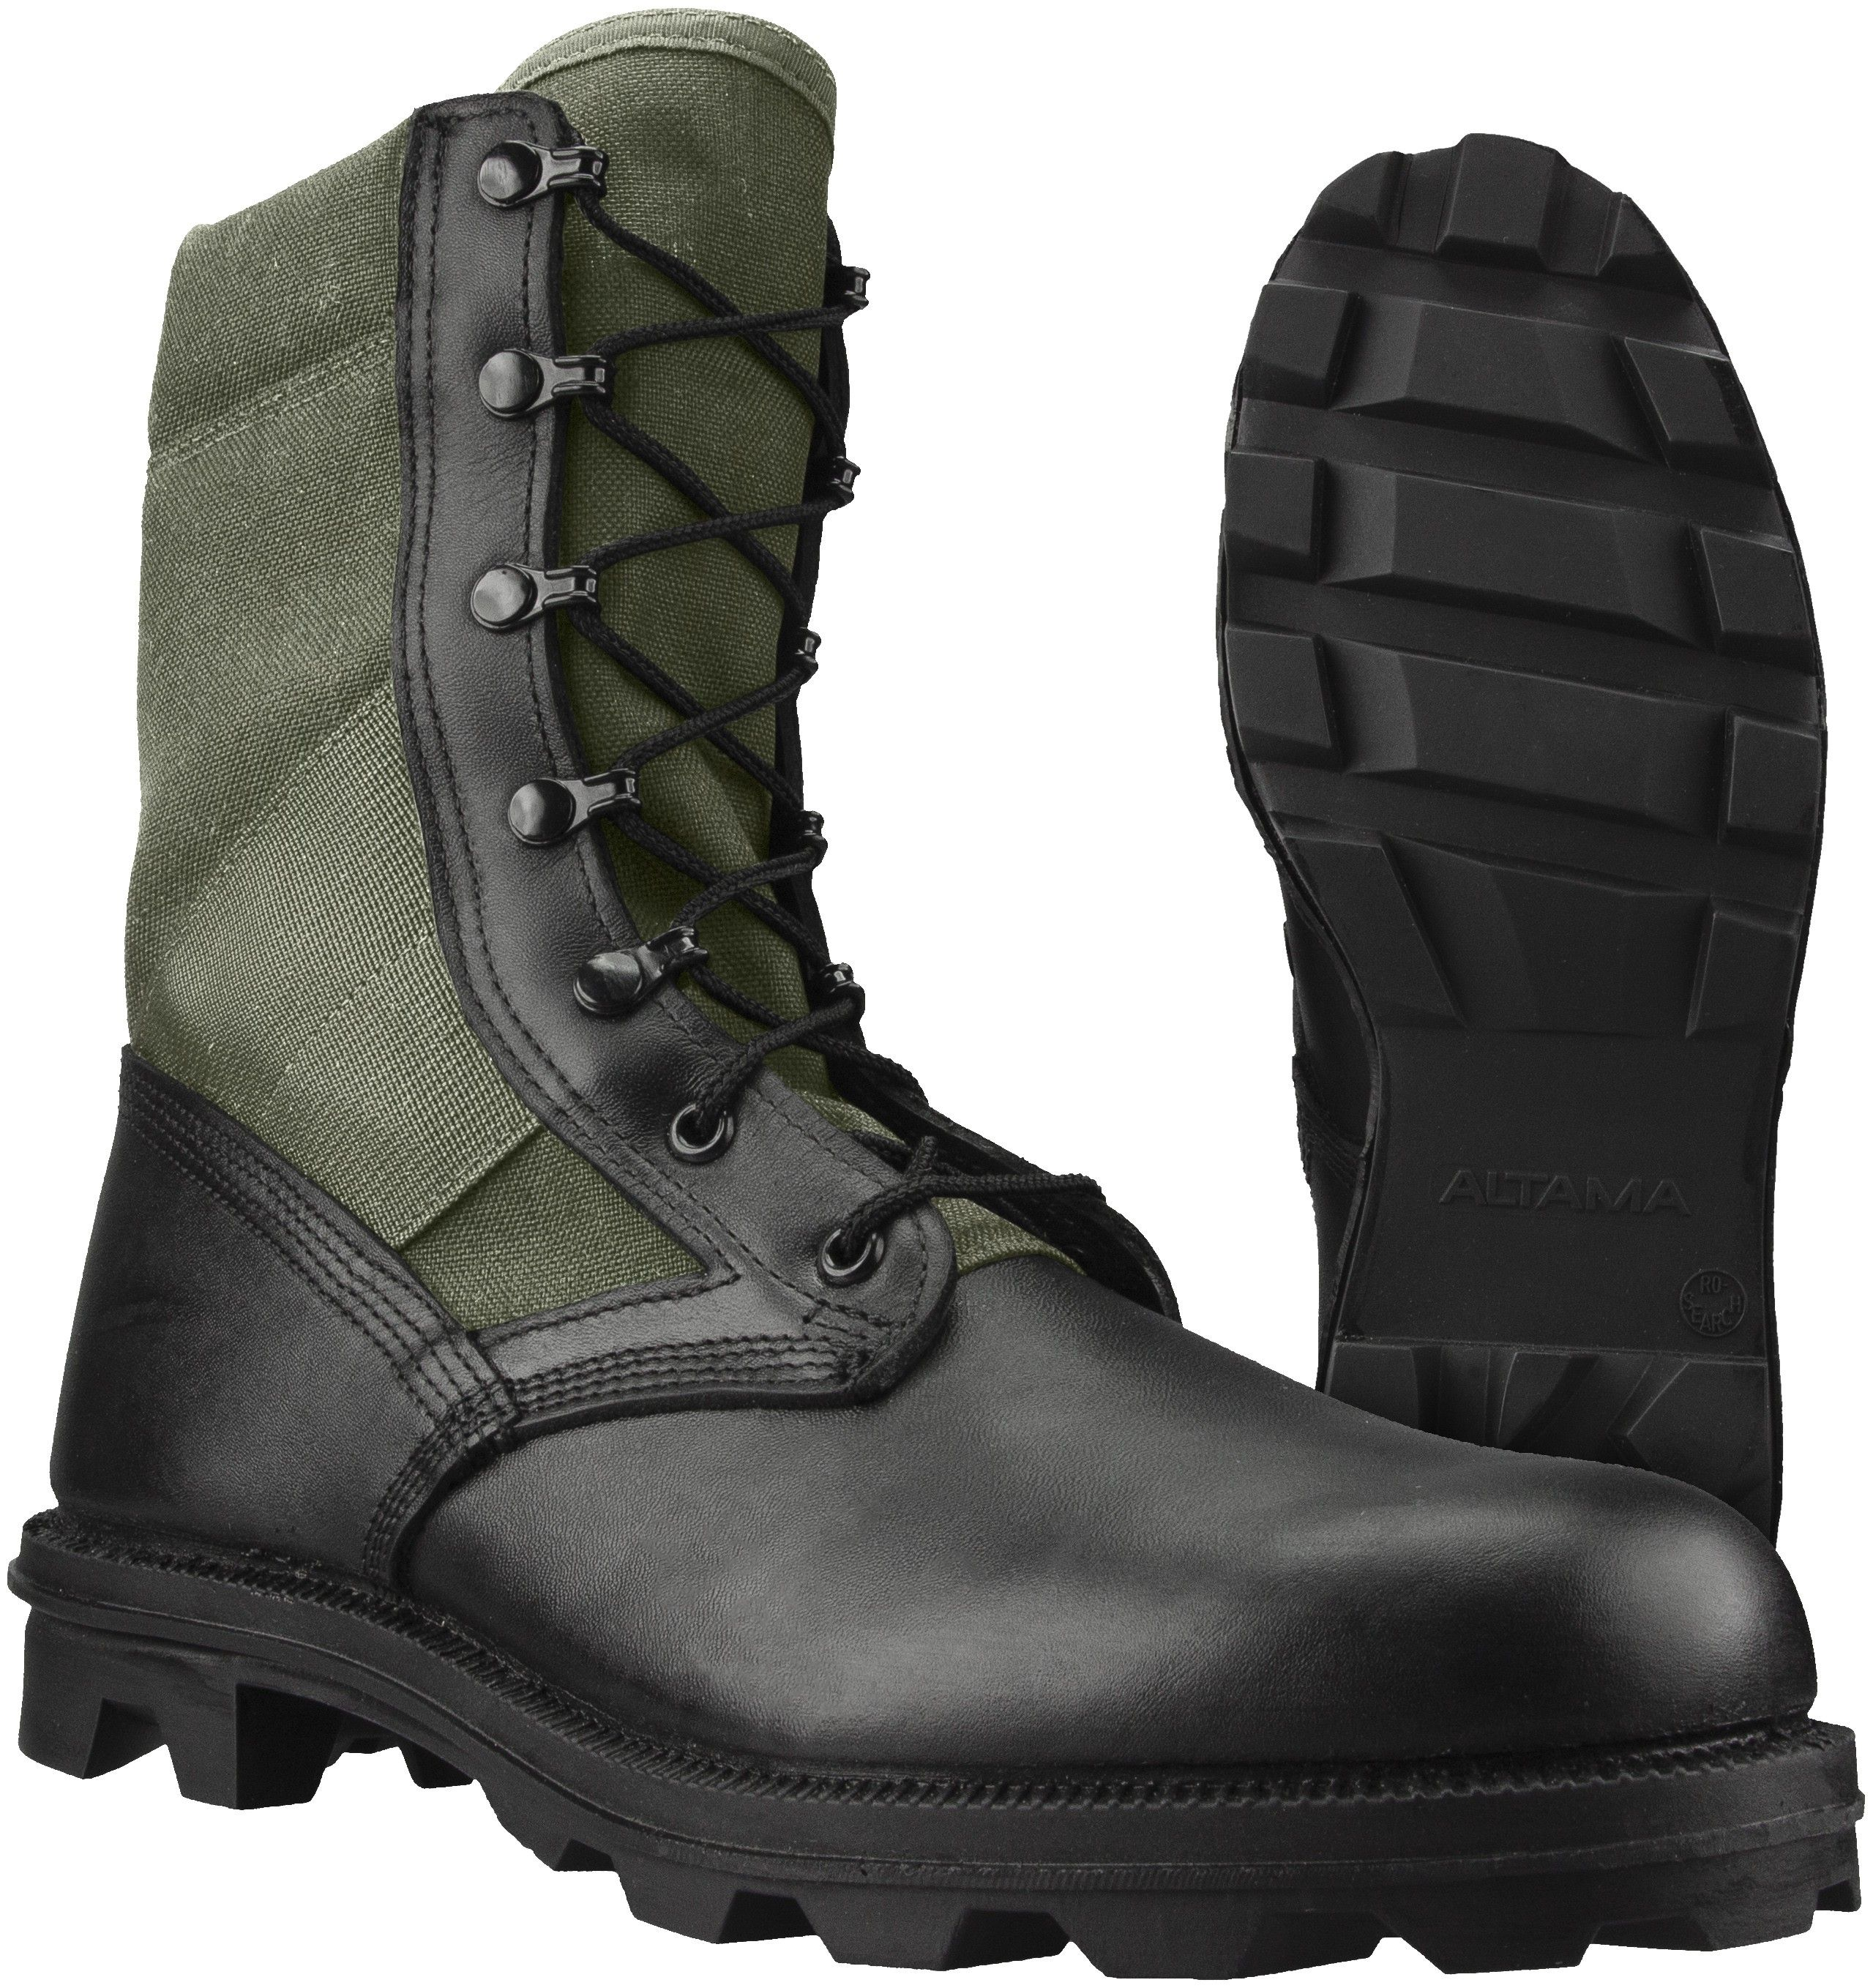 8ad0cf83c43 New Jungle Boots coming soon from Altama!